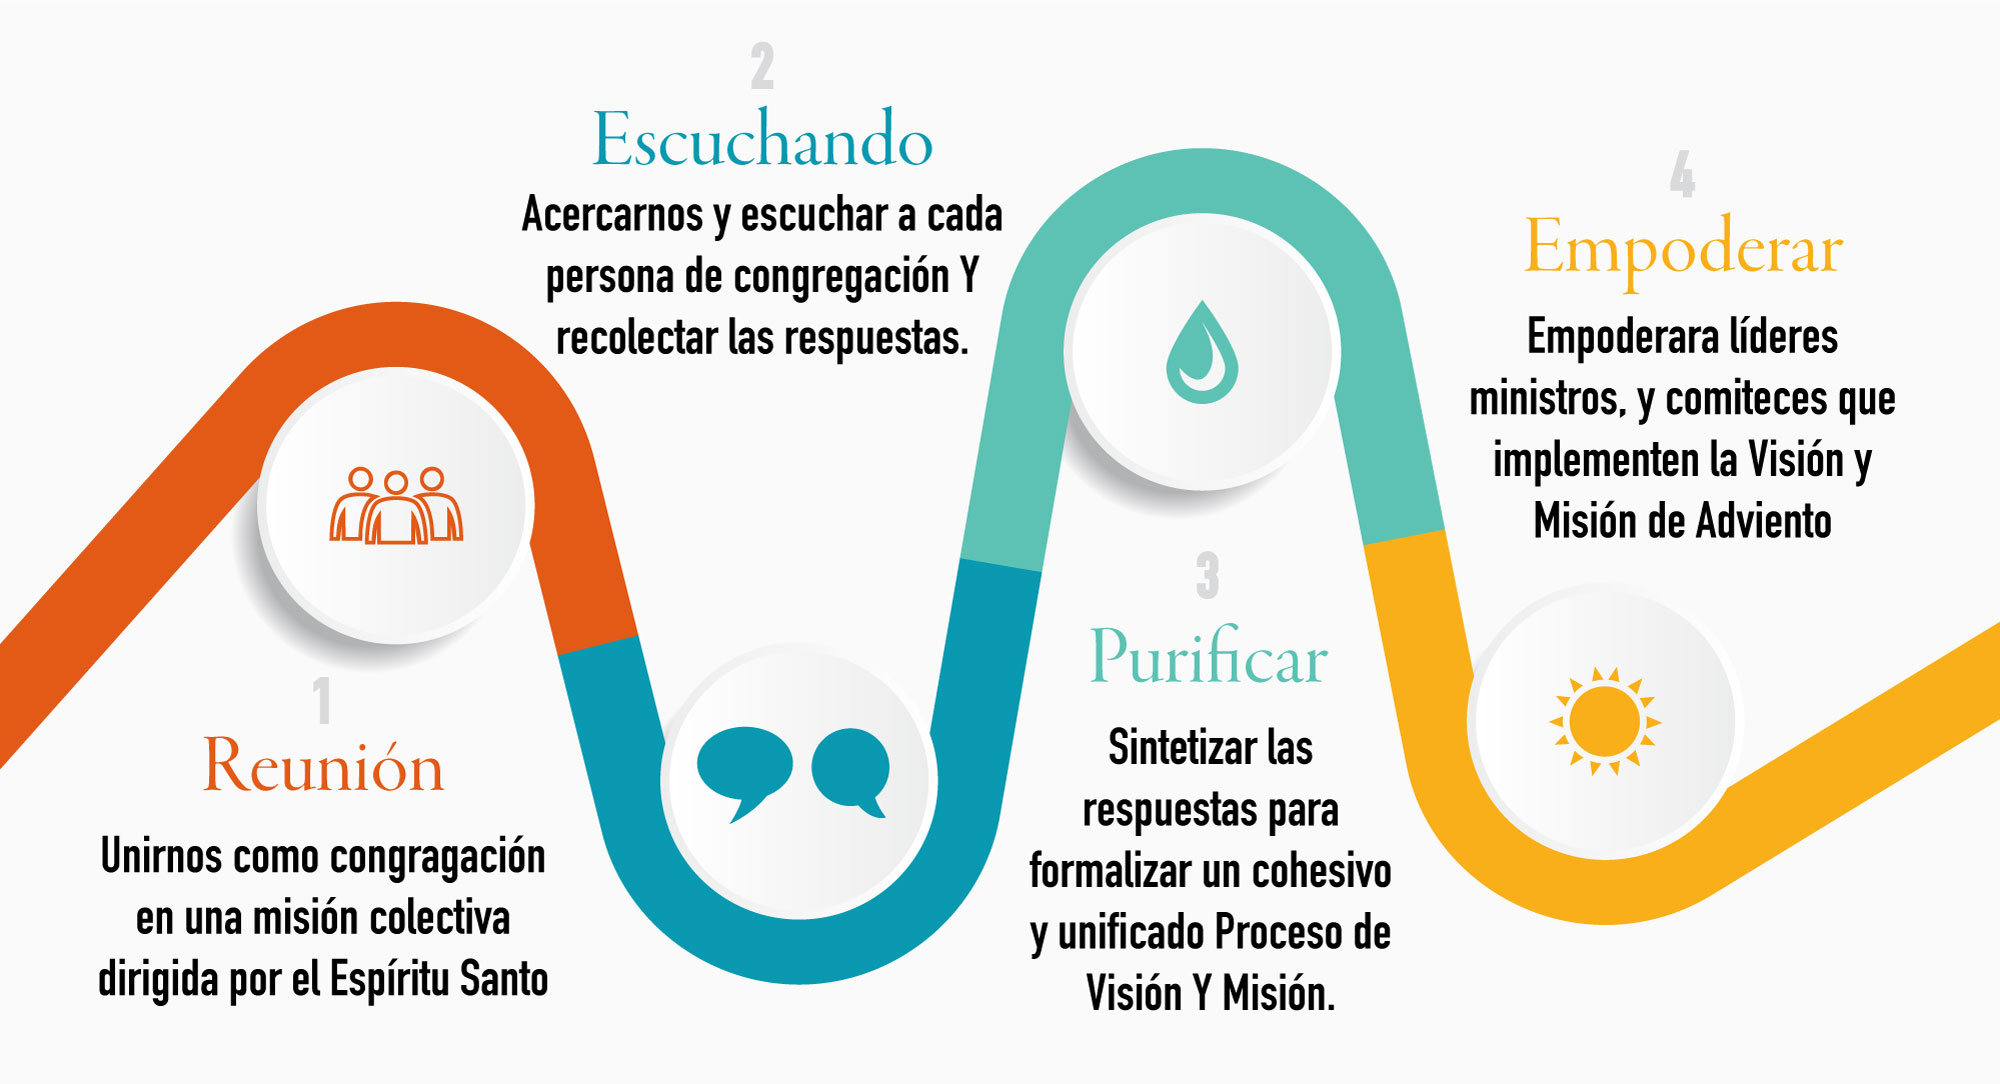 Visioning-Stages-infographic_Spanish.jpg